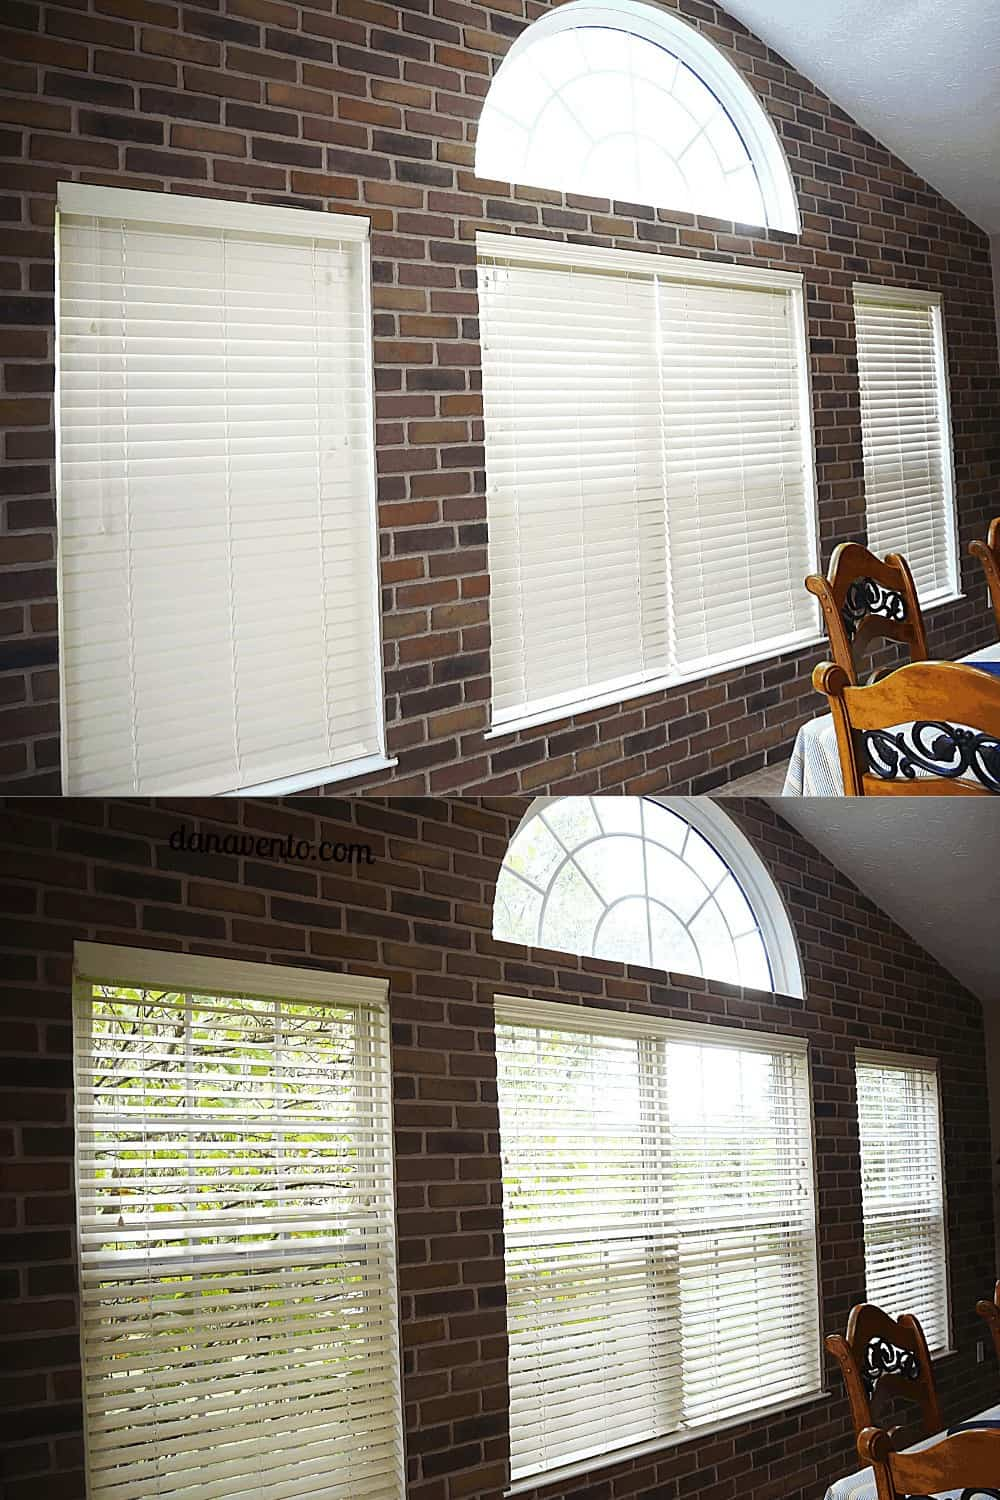 Upgrade your blinds and these are the new blinds